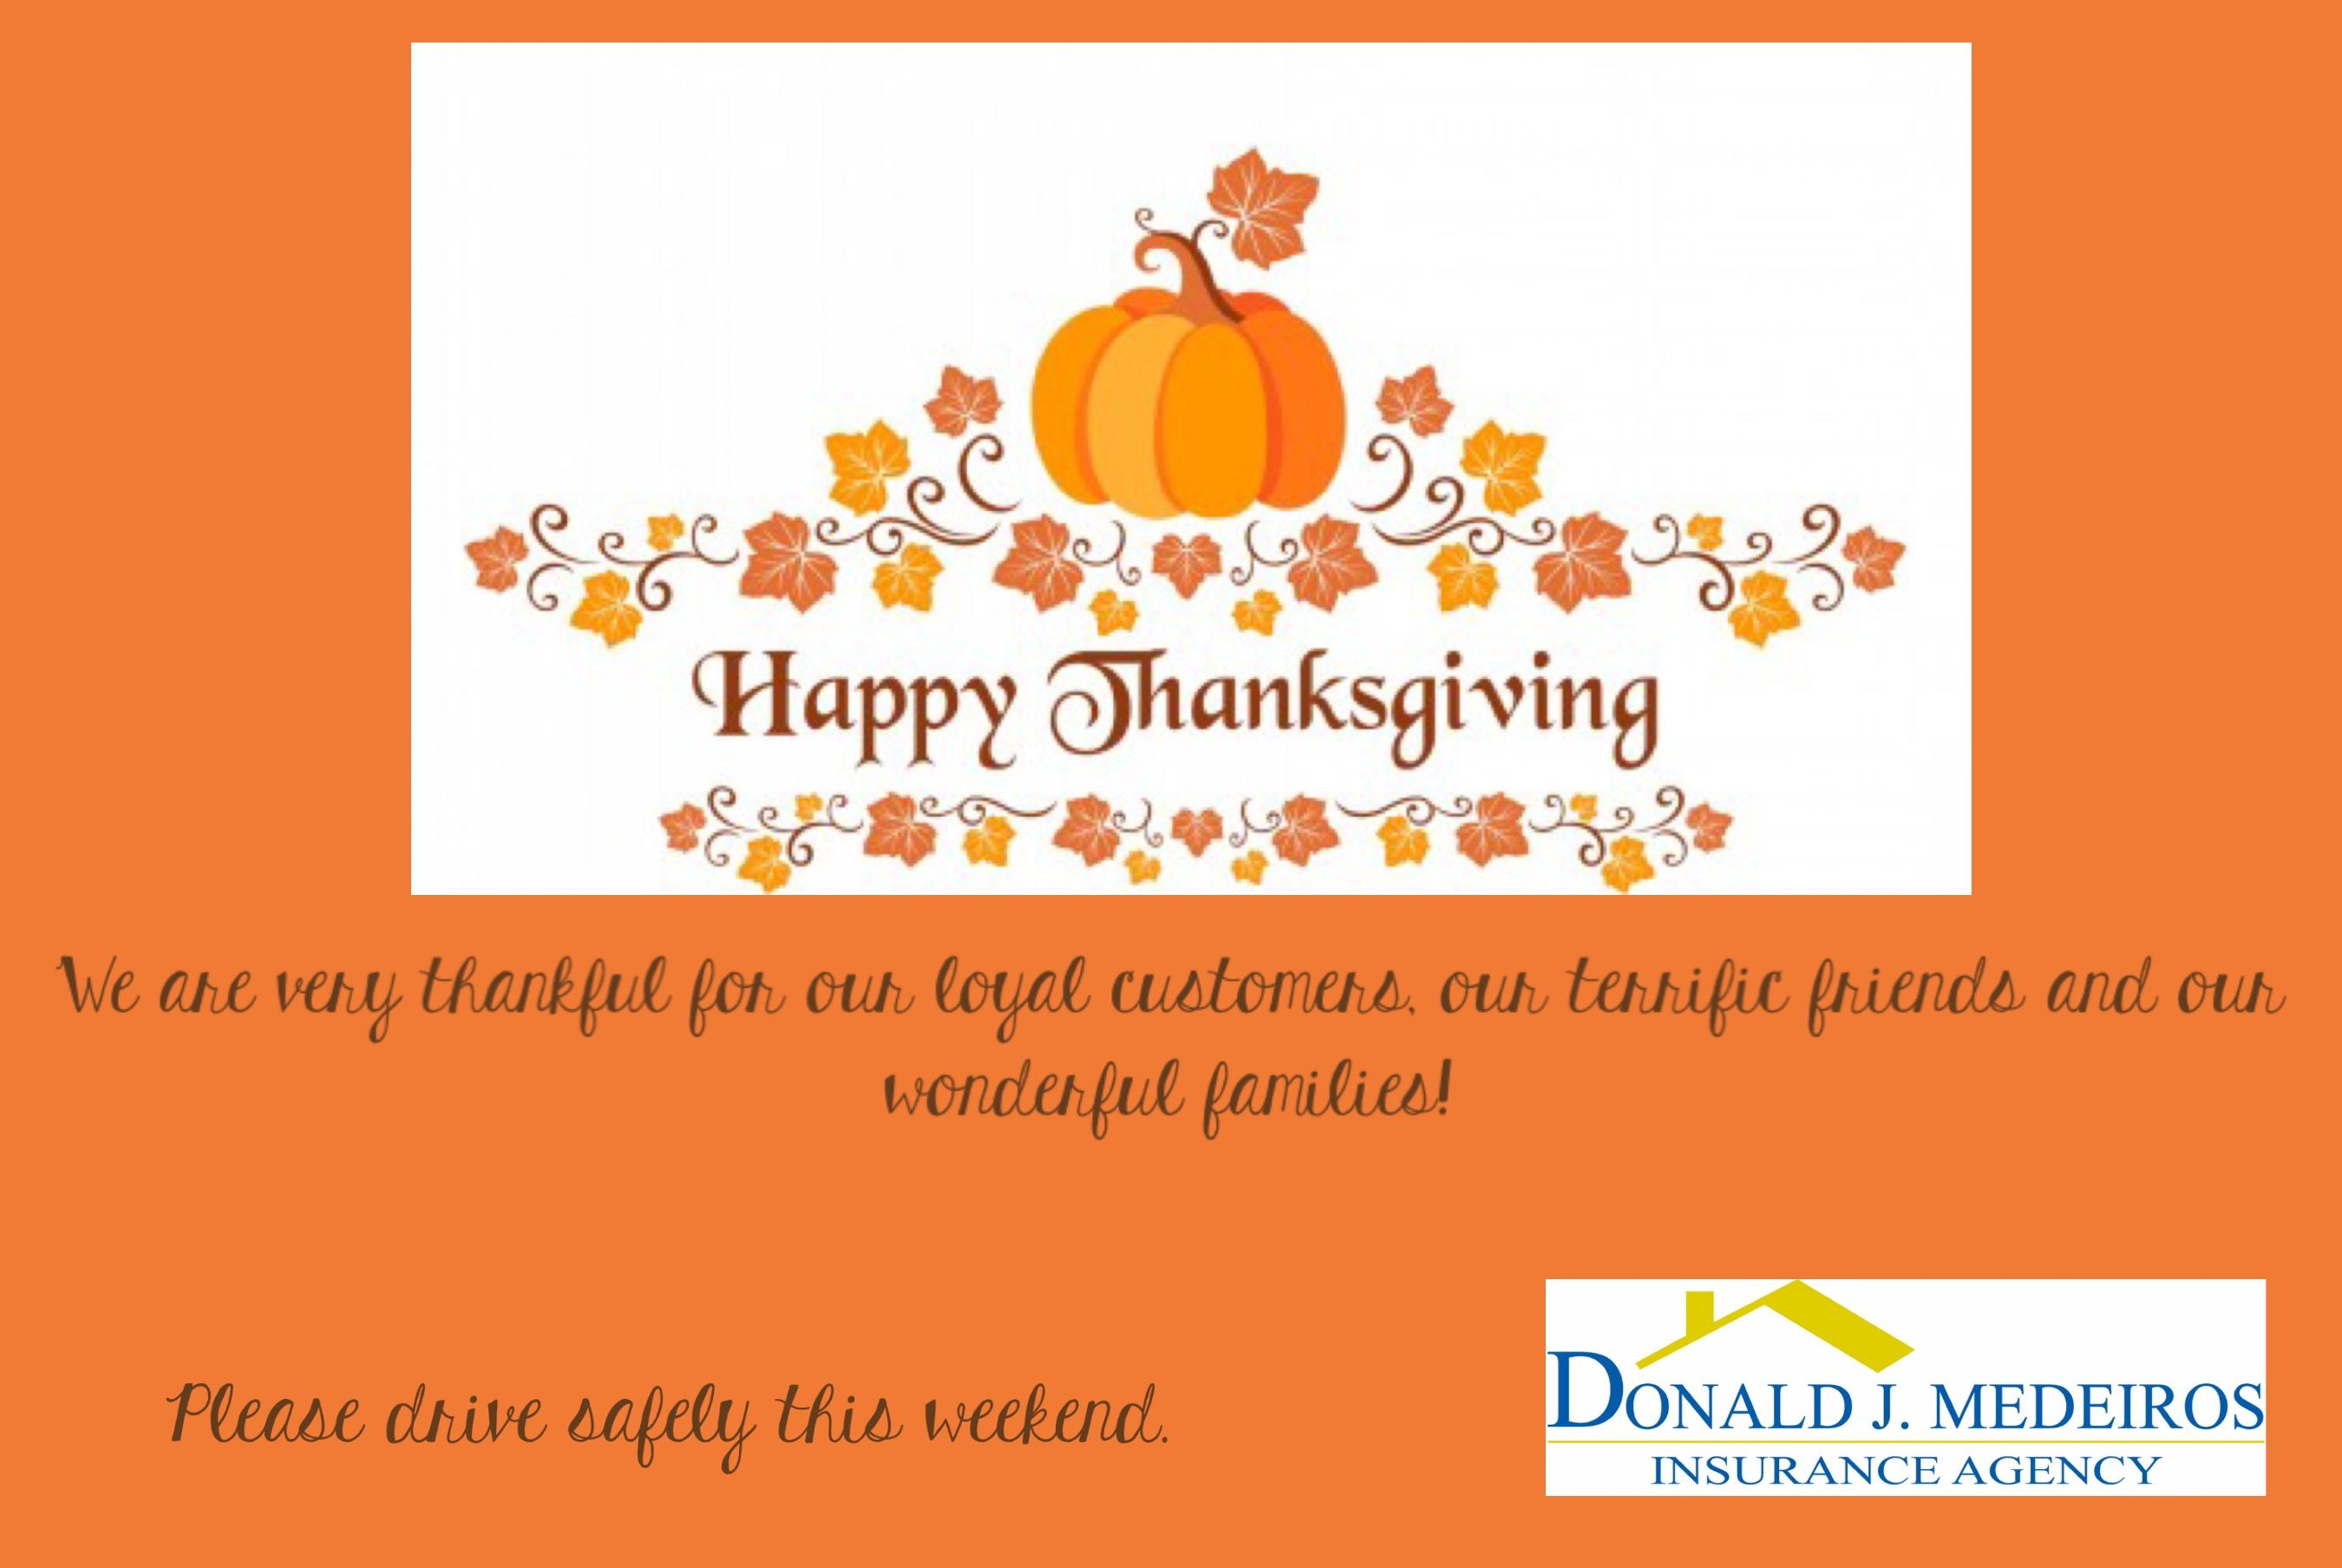 We are very thankful for you! Happy Thanksgiving from our